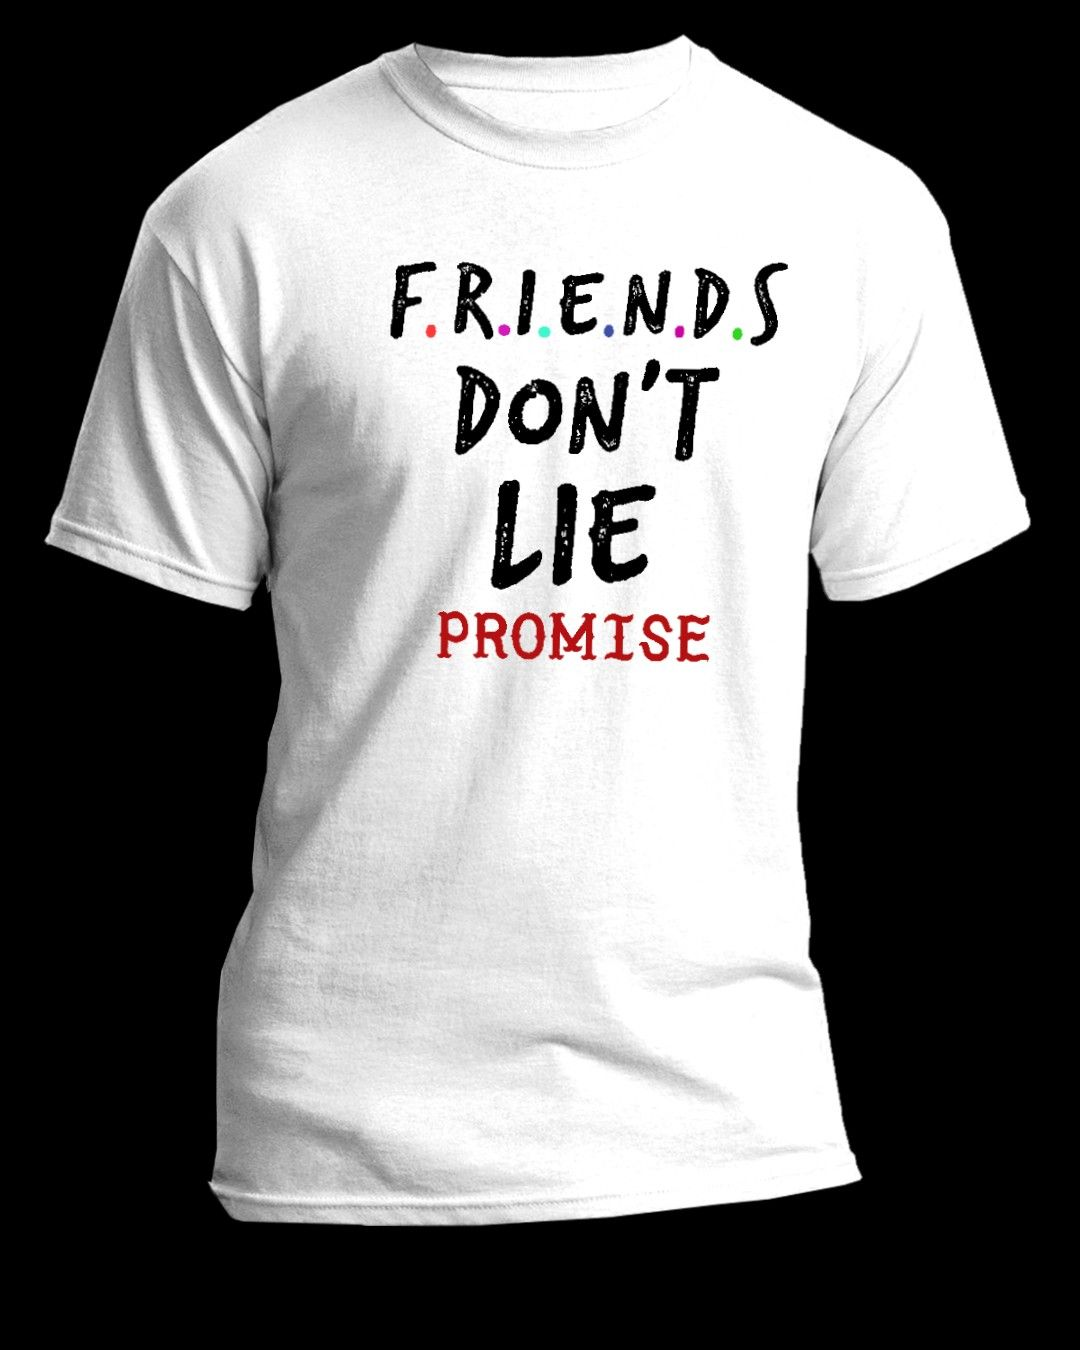 Buy a gift for your best friend on friendship day from